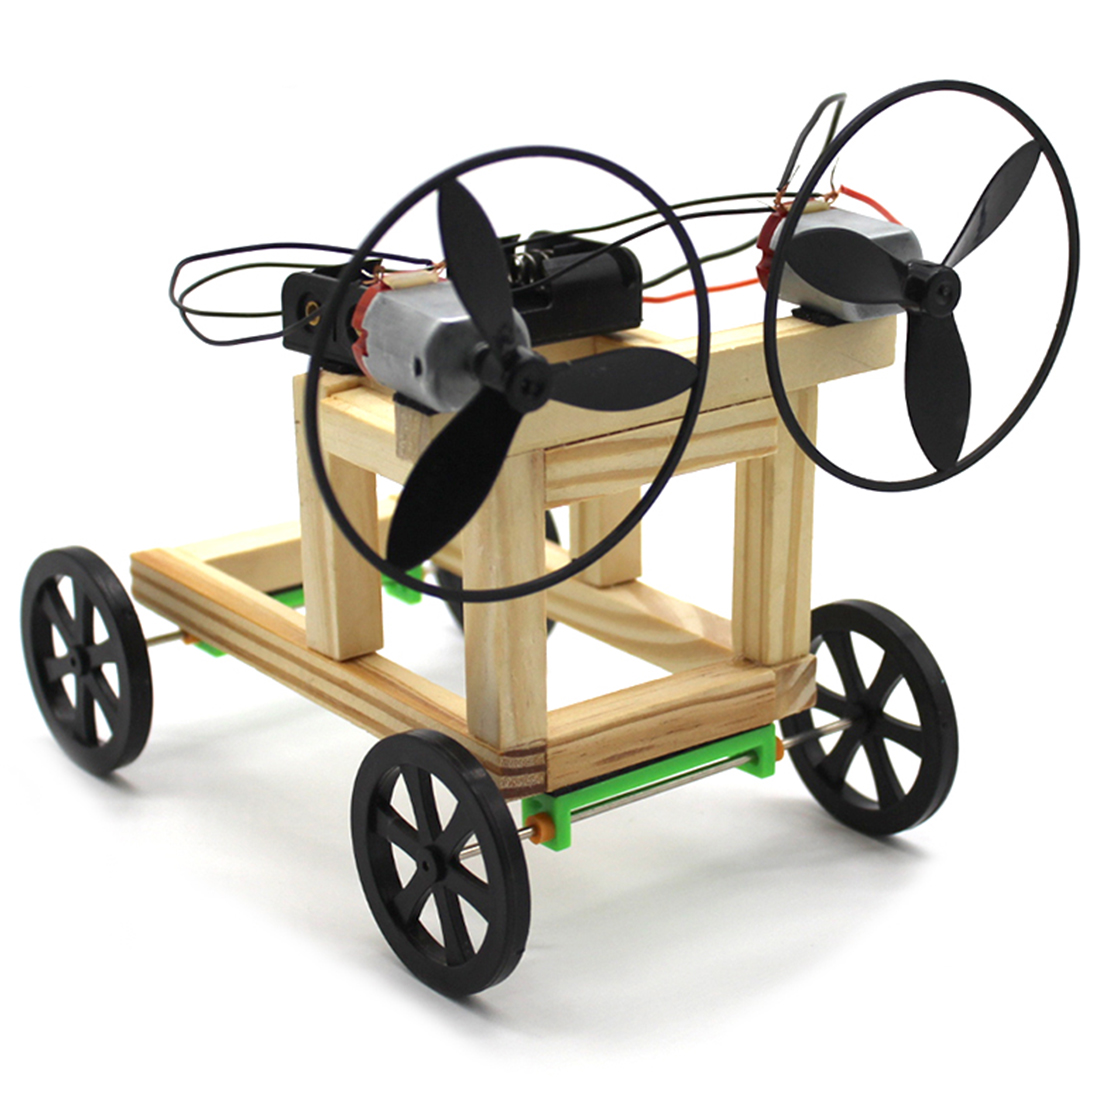 Science Physical DIY Wind Power Car 4WD Model Wood ElectricExperiments Assemble Kit Education Toys Motor for Kids image